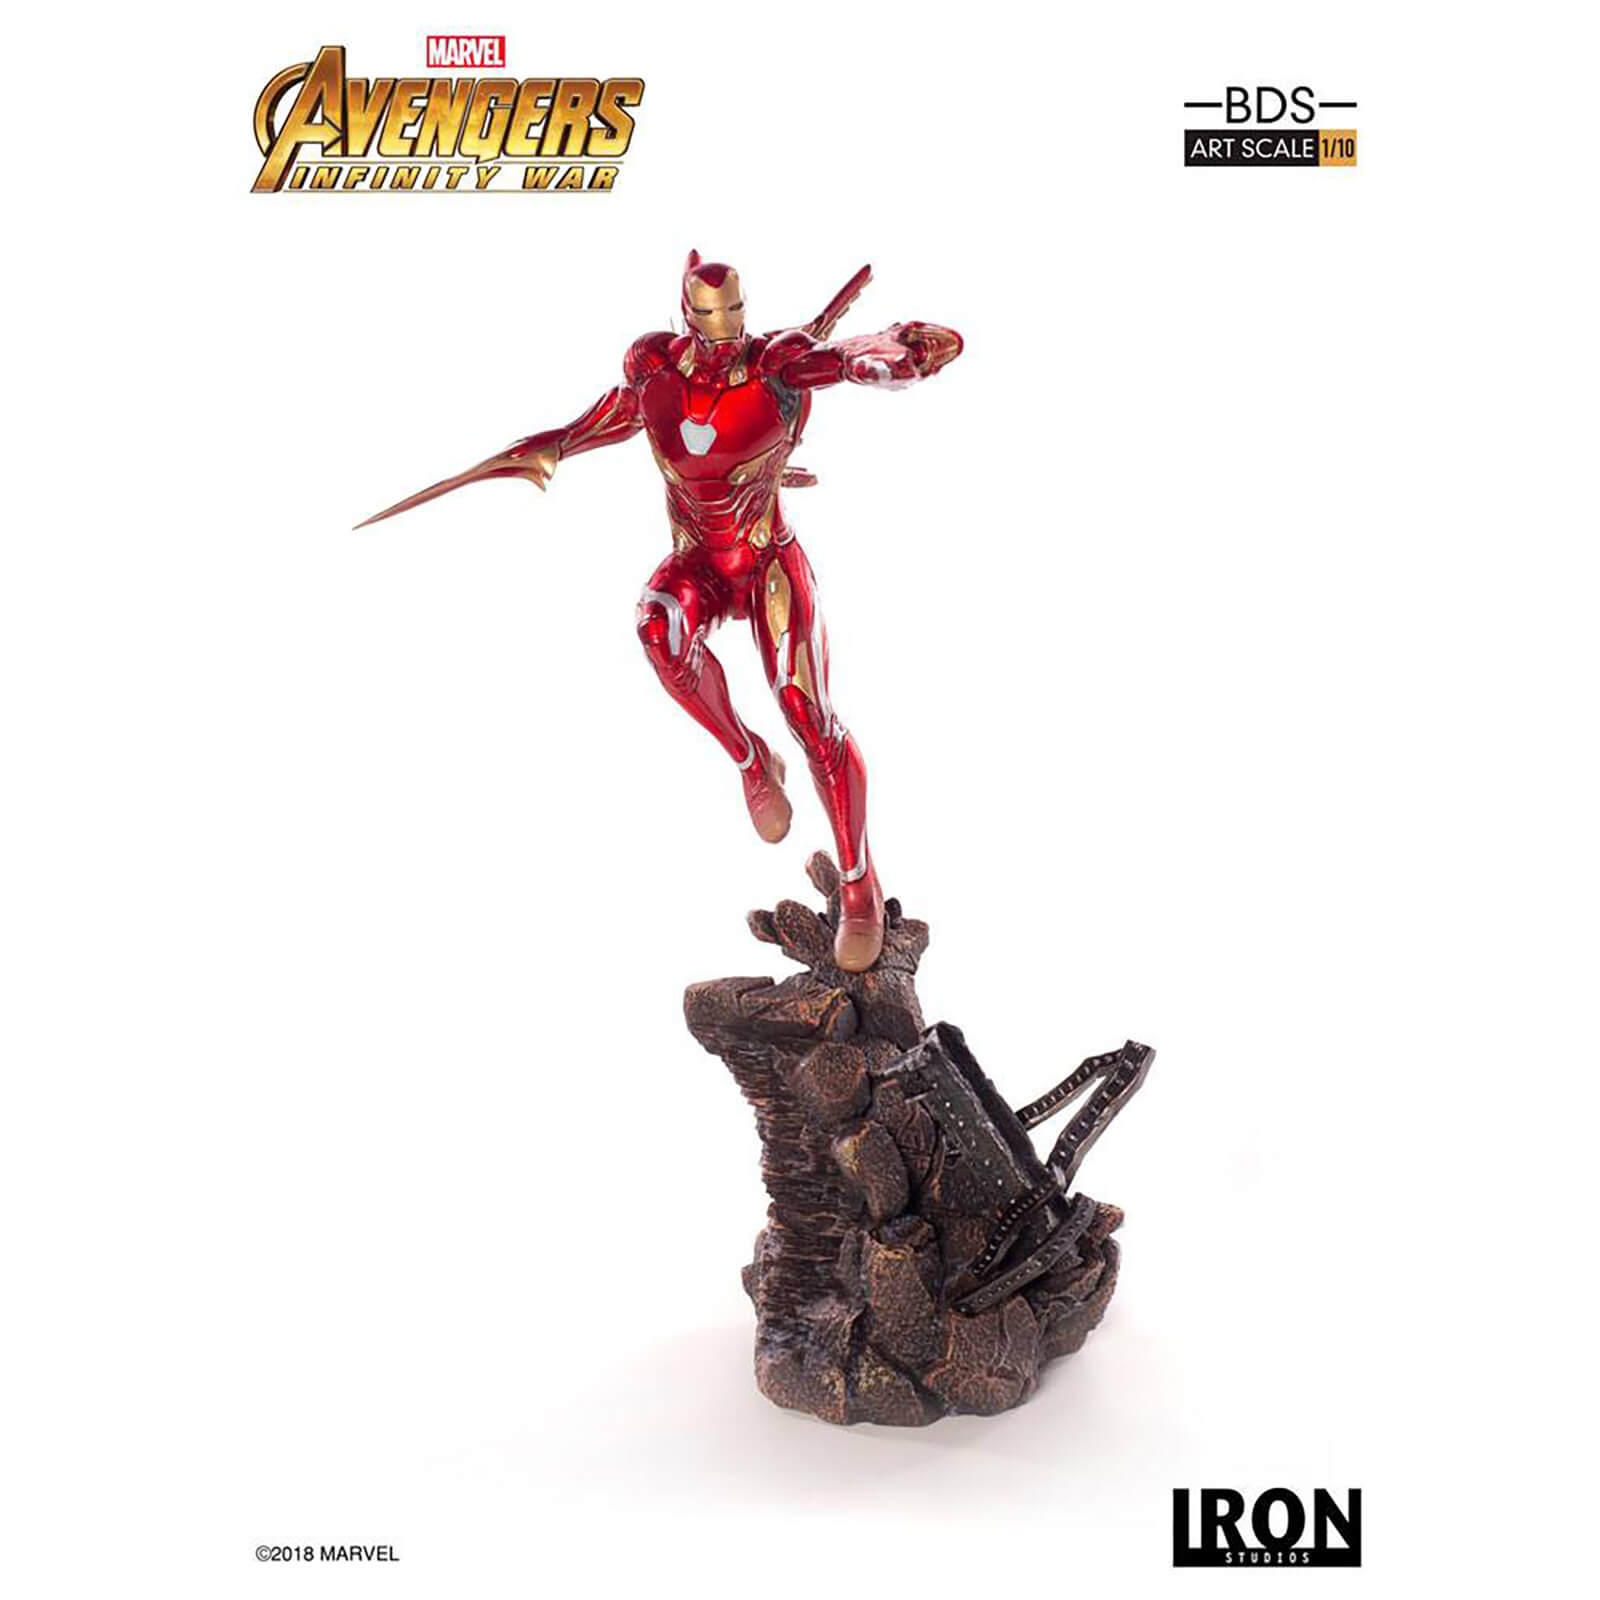 Iron Studios Avengers Infinity War BDS Art Scale Statue 1/10 Iron Man Mark L 31 cm